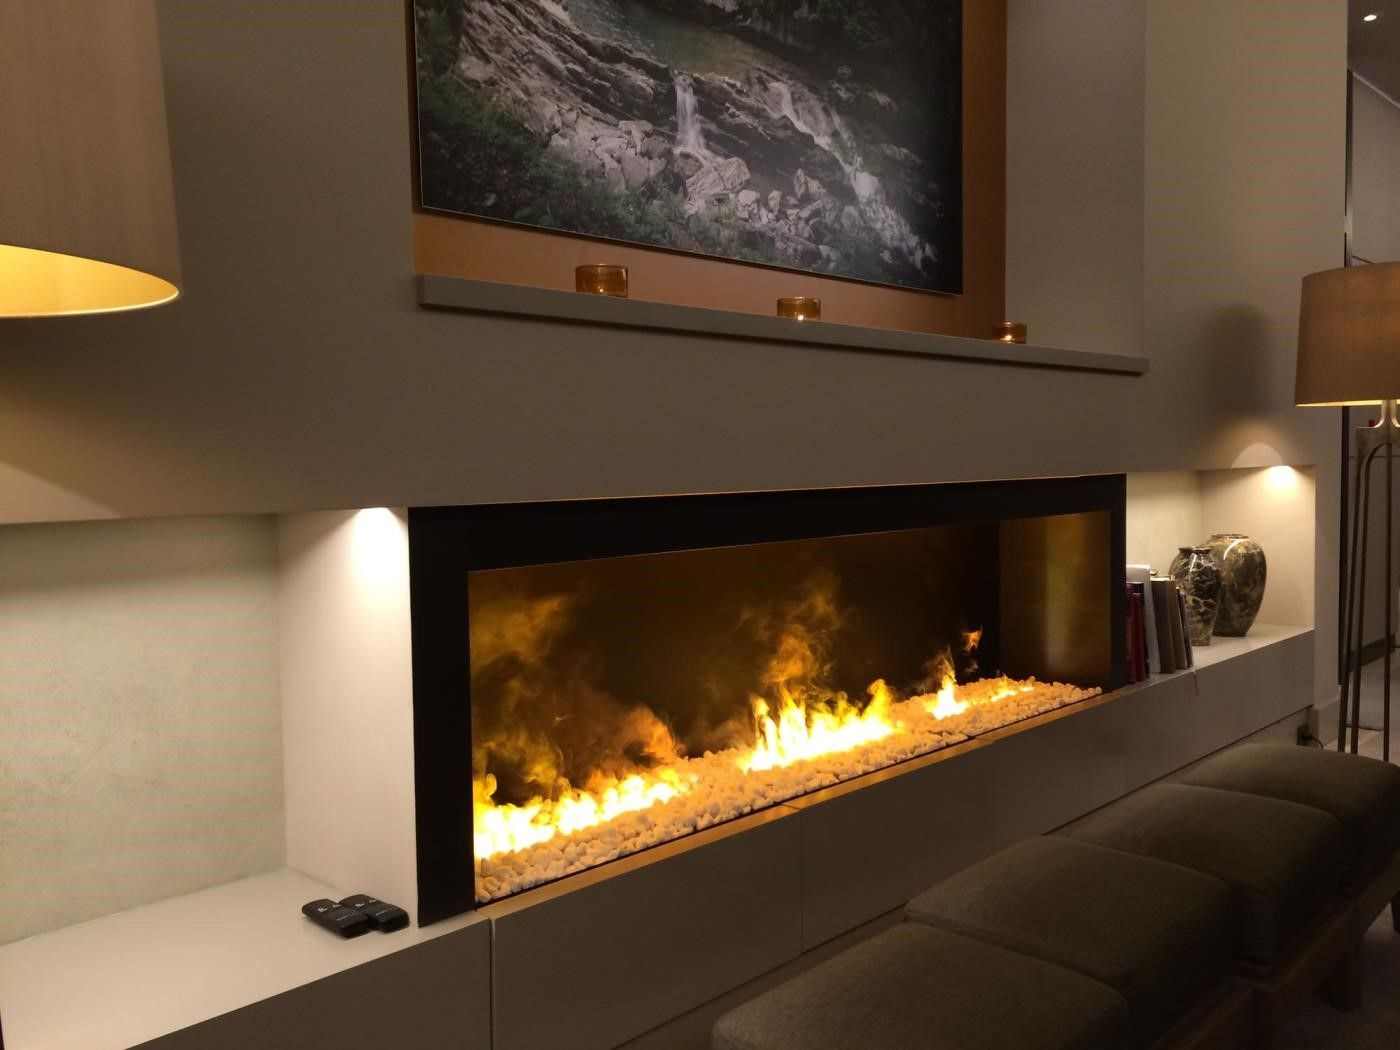 Bedroom electric fireplace - Wall Mount Electric Fireplace Under Tv Www Handyman Goldcoast Com